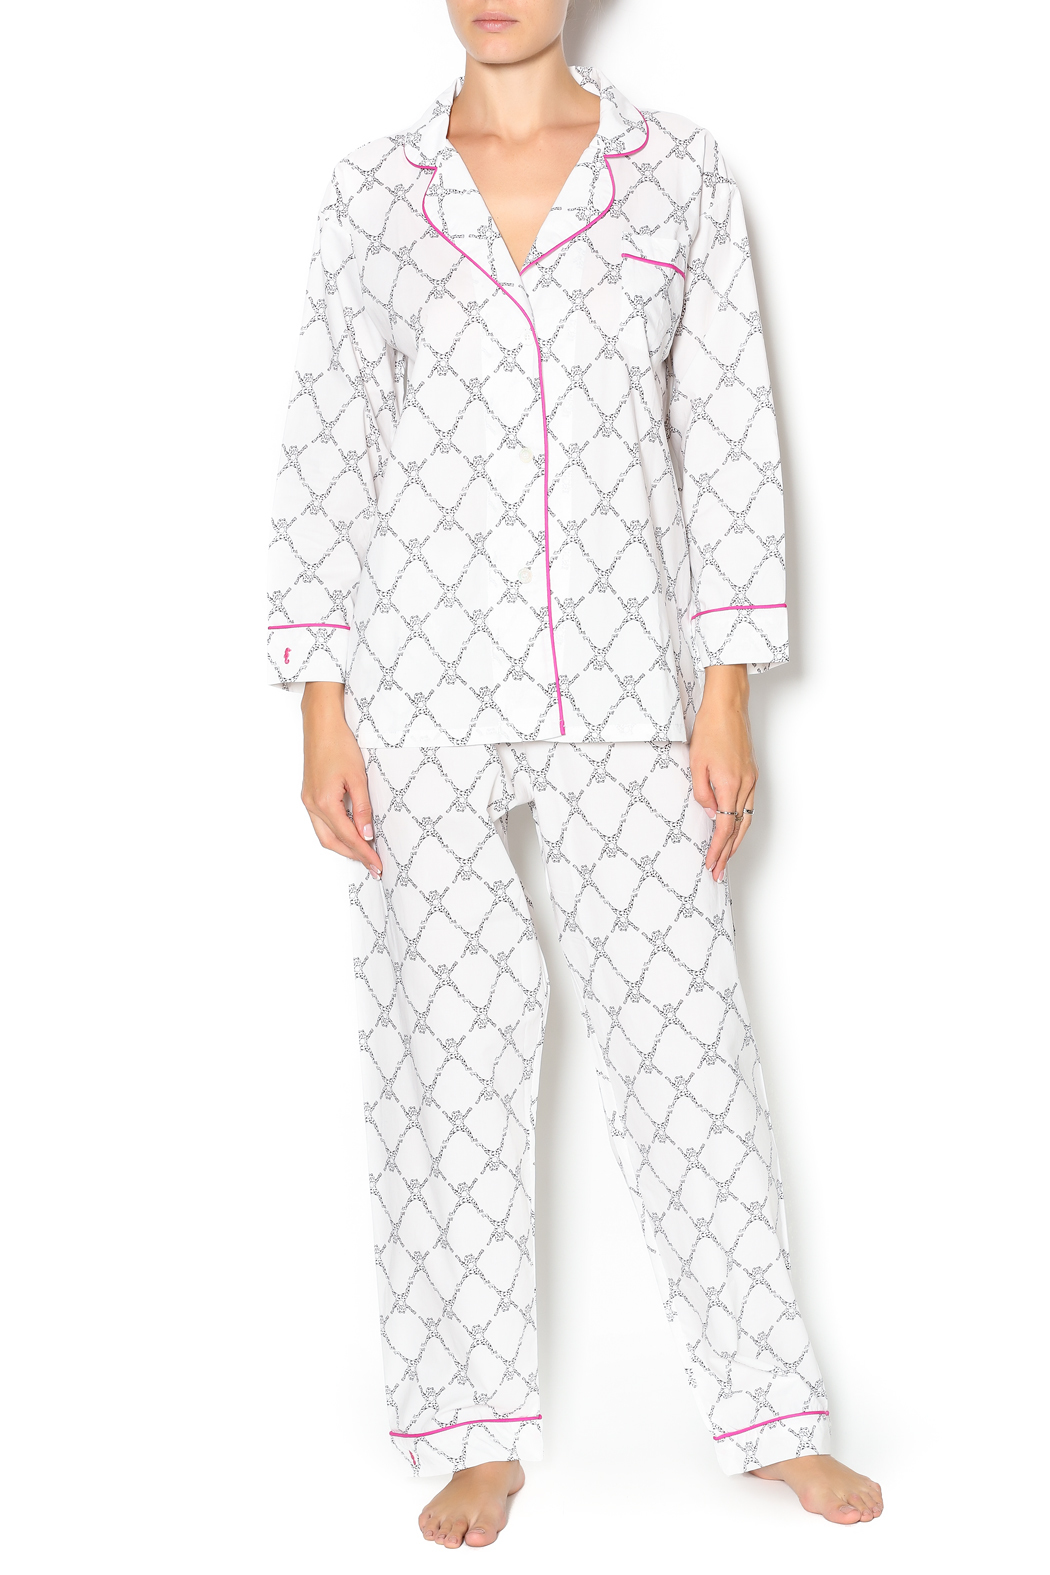 286edfd33584 Marigot Chocolate Frog Pajama Set from Edina by A La Mode Boutique ...